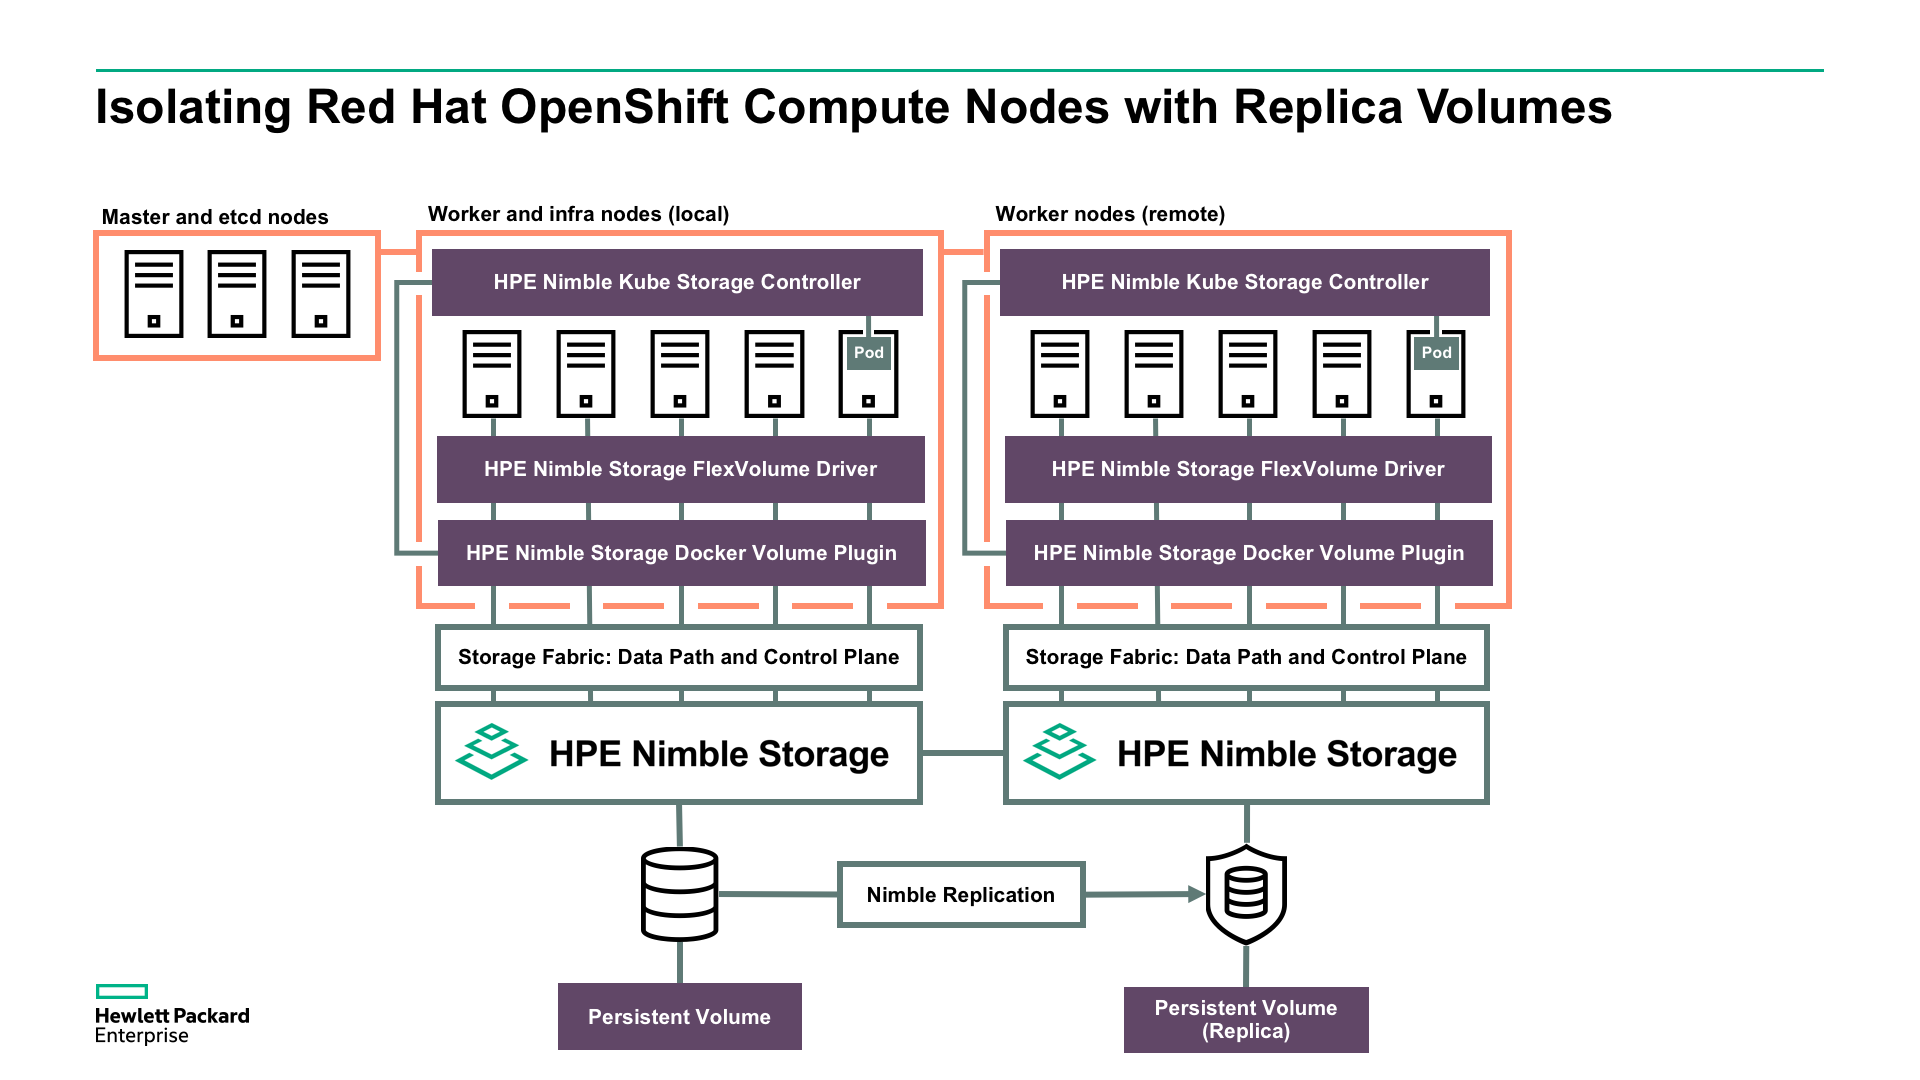 Red Hat OpenShift Nodes with HPE Nimble Storage replica volumes